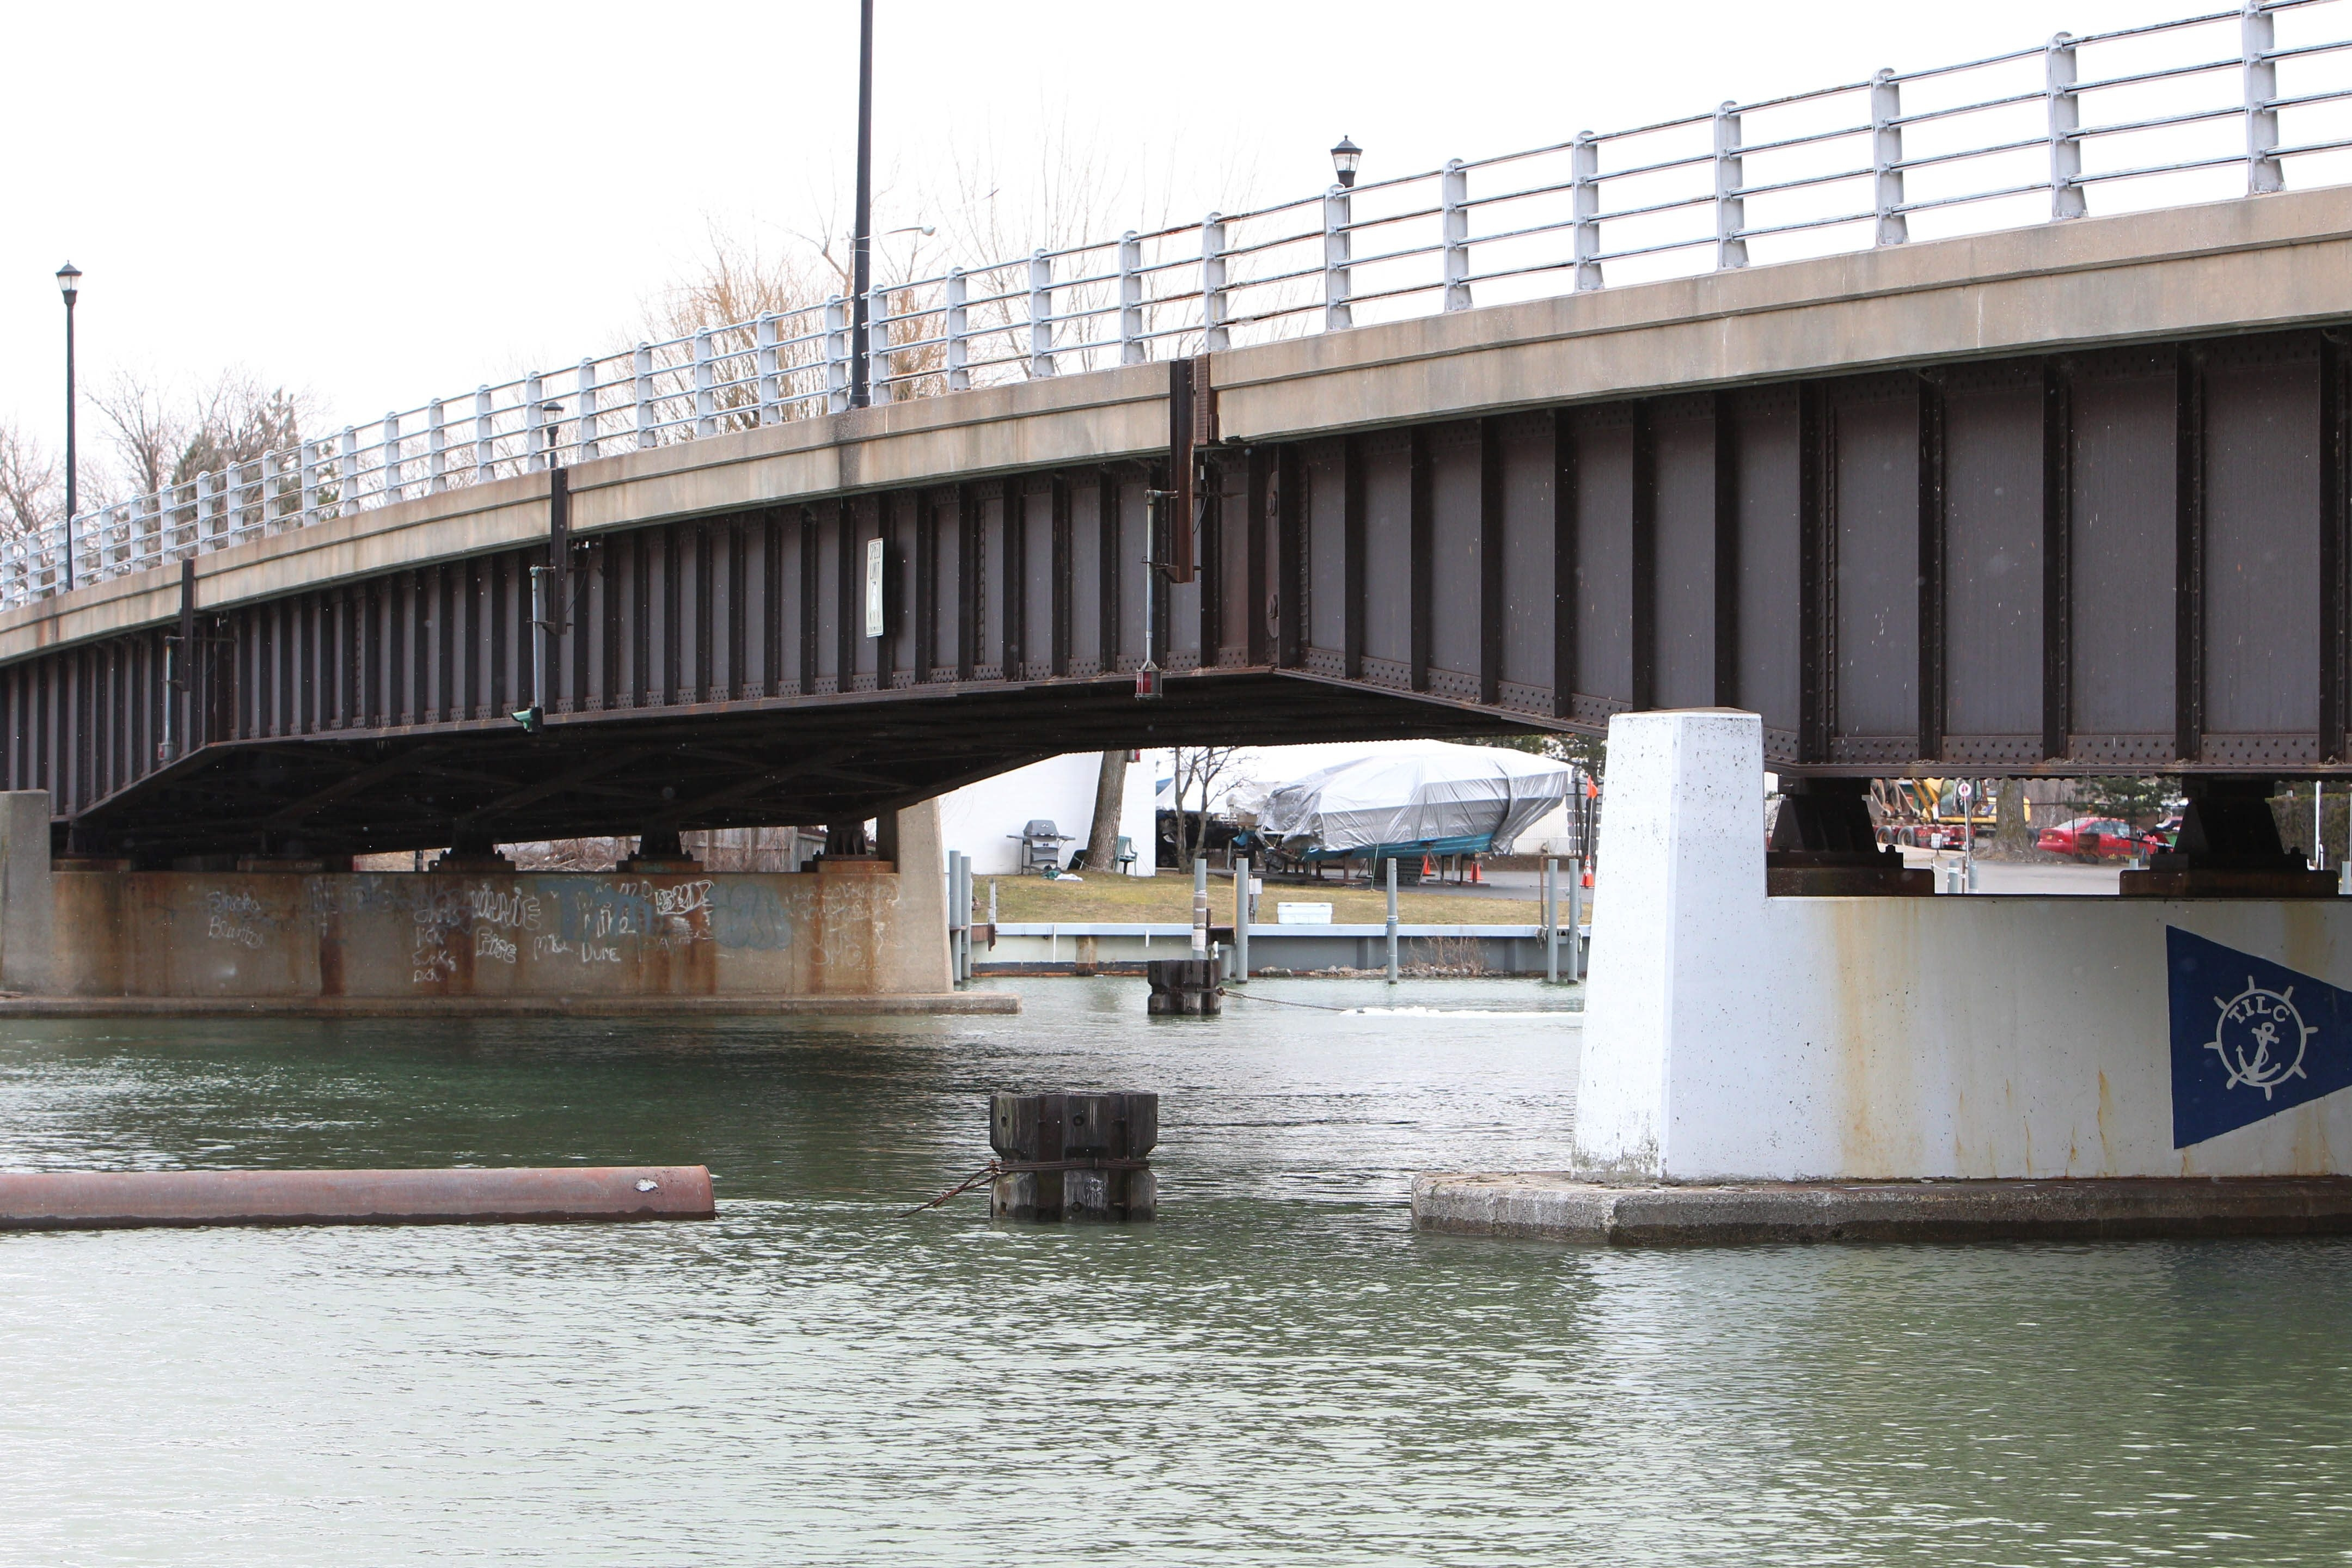 The North Tonwanda Common Council on Tuesday approved a project to repair the salt-eroded Durkee Memorial Bridge, which connects North Tonawanda and Tonawanda Island.